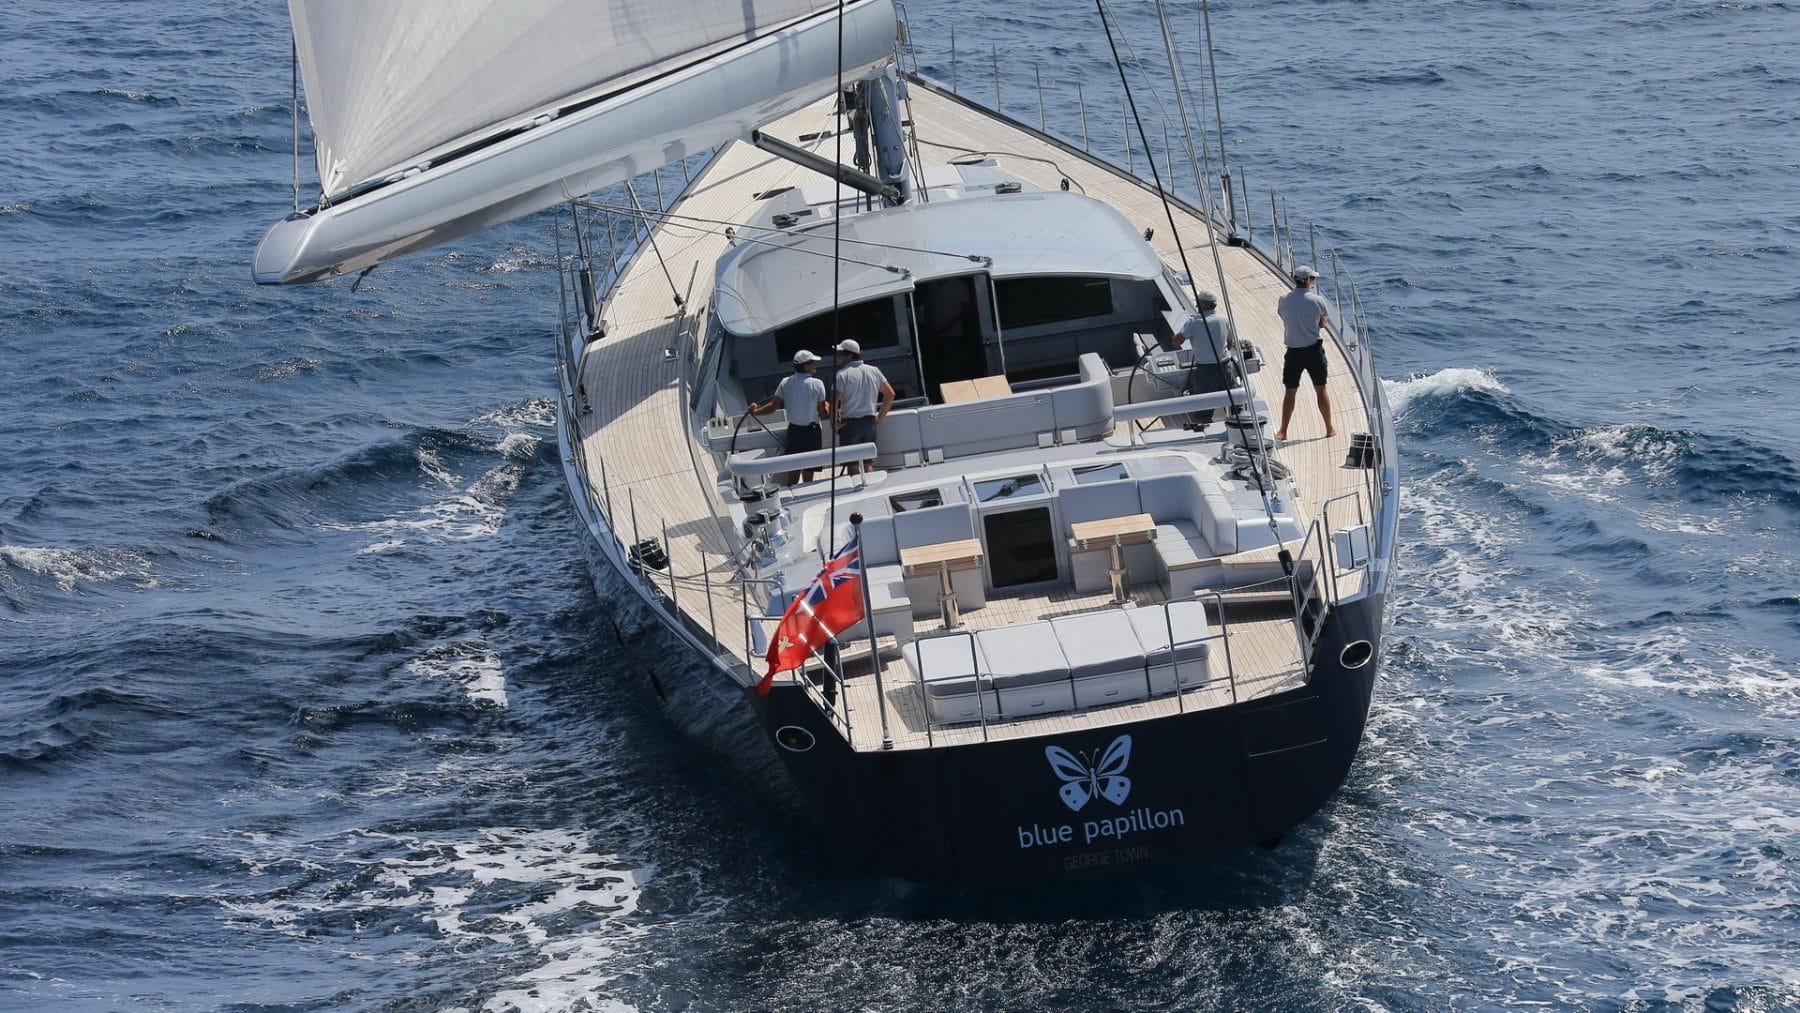 Blue Papillon yacht